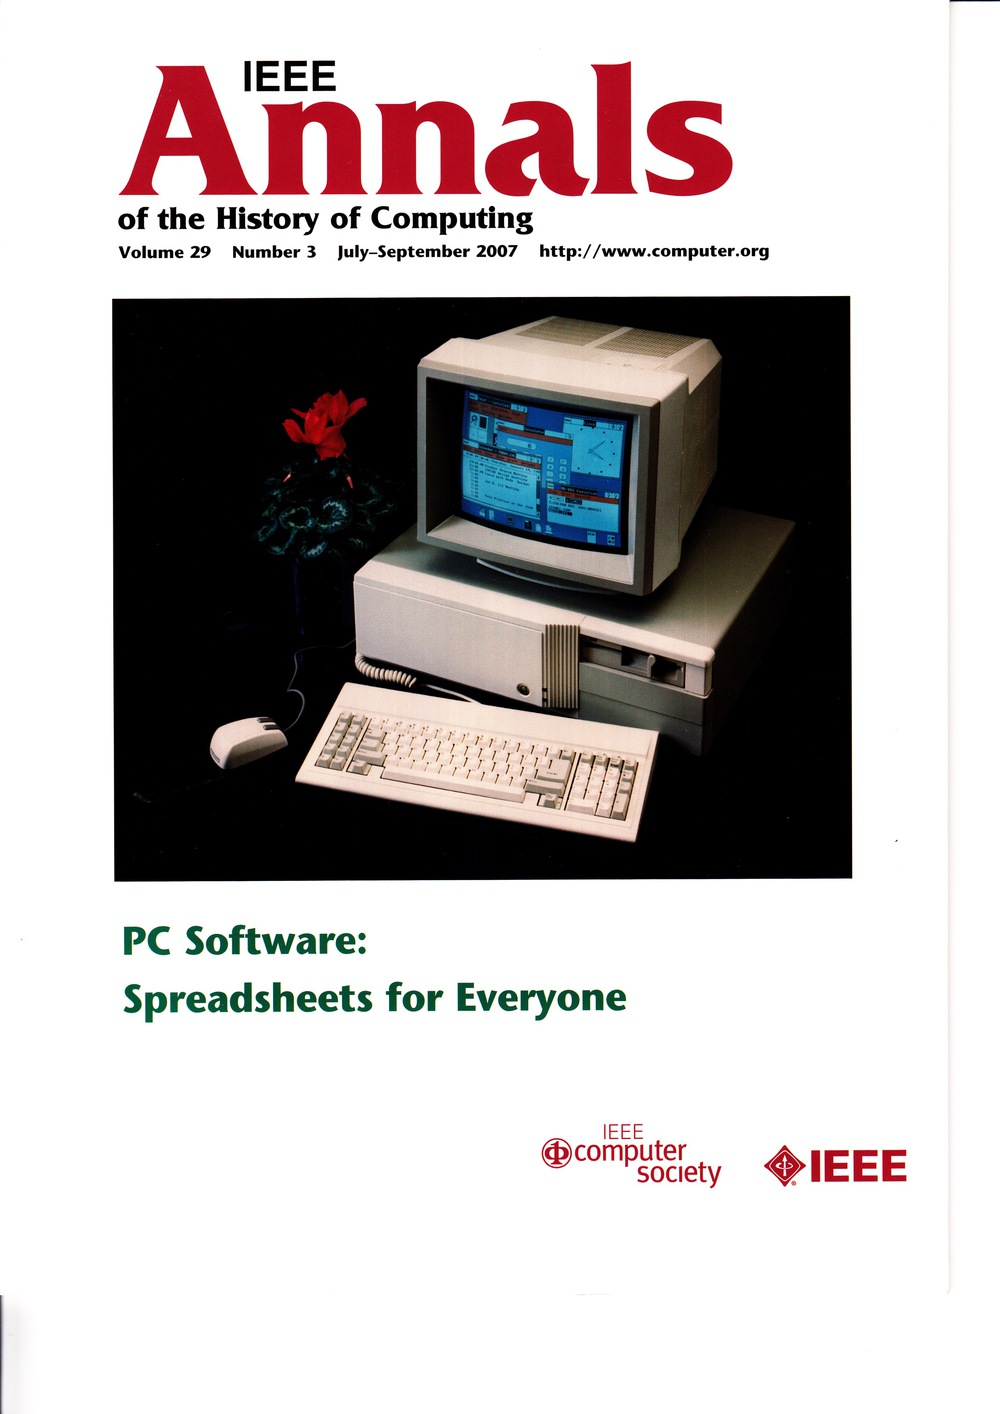 Scan of Document: IEEE Annals of the History of Computing - July-September 2007